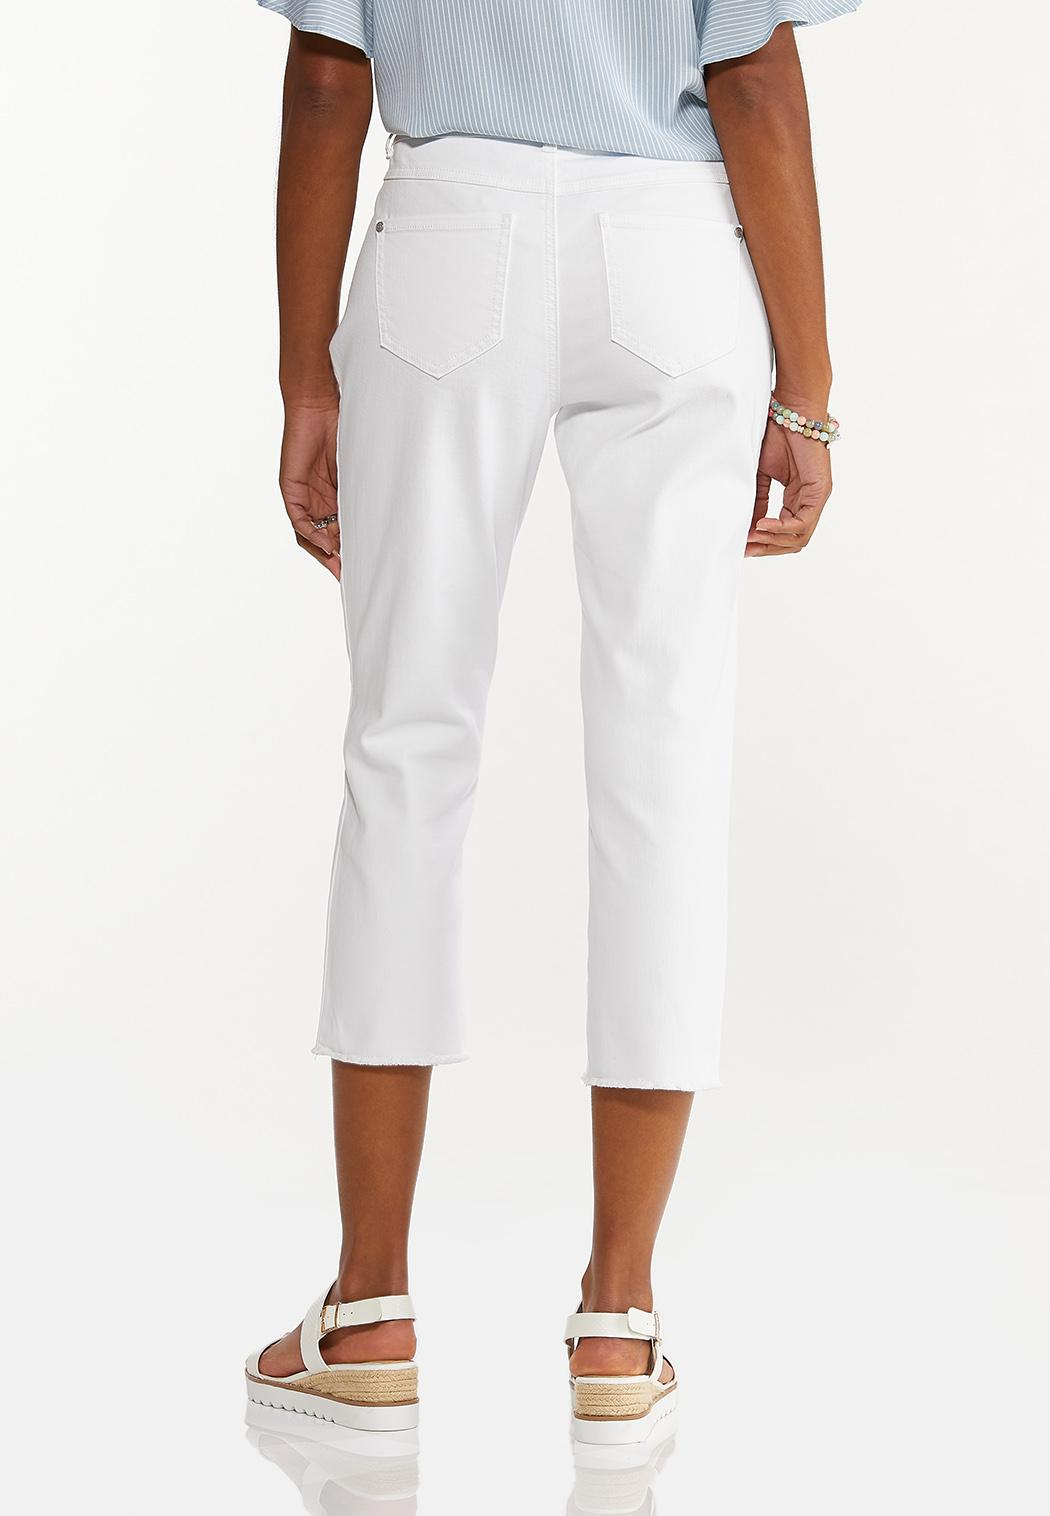 White Cropped Girlfriend Jeans (Item #44568474)